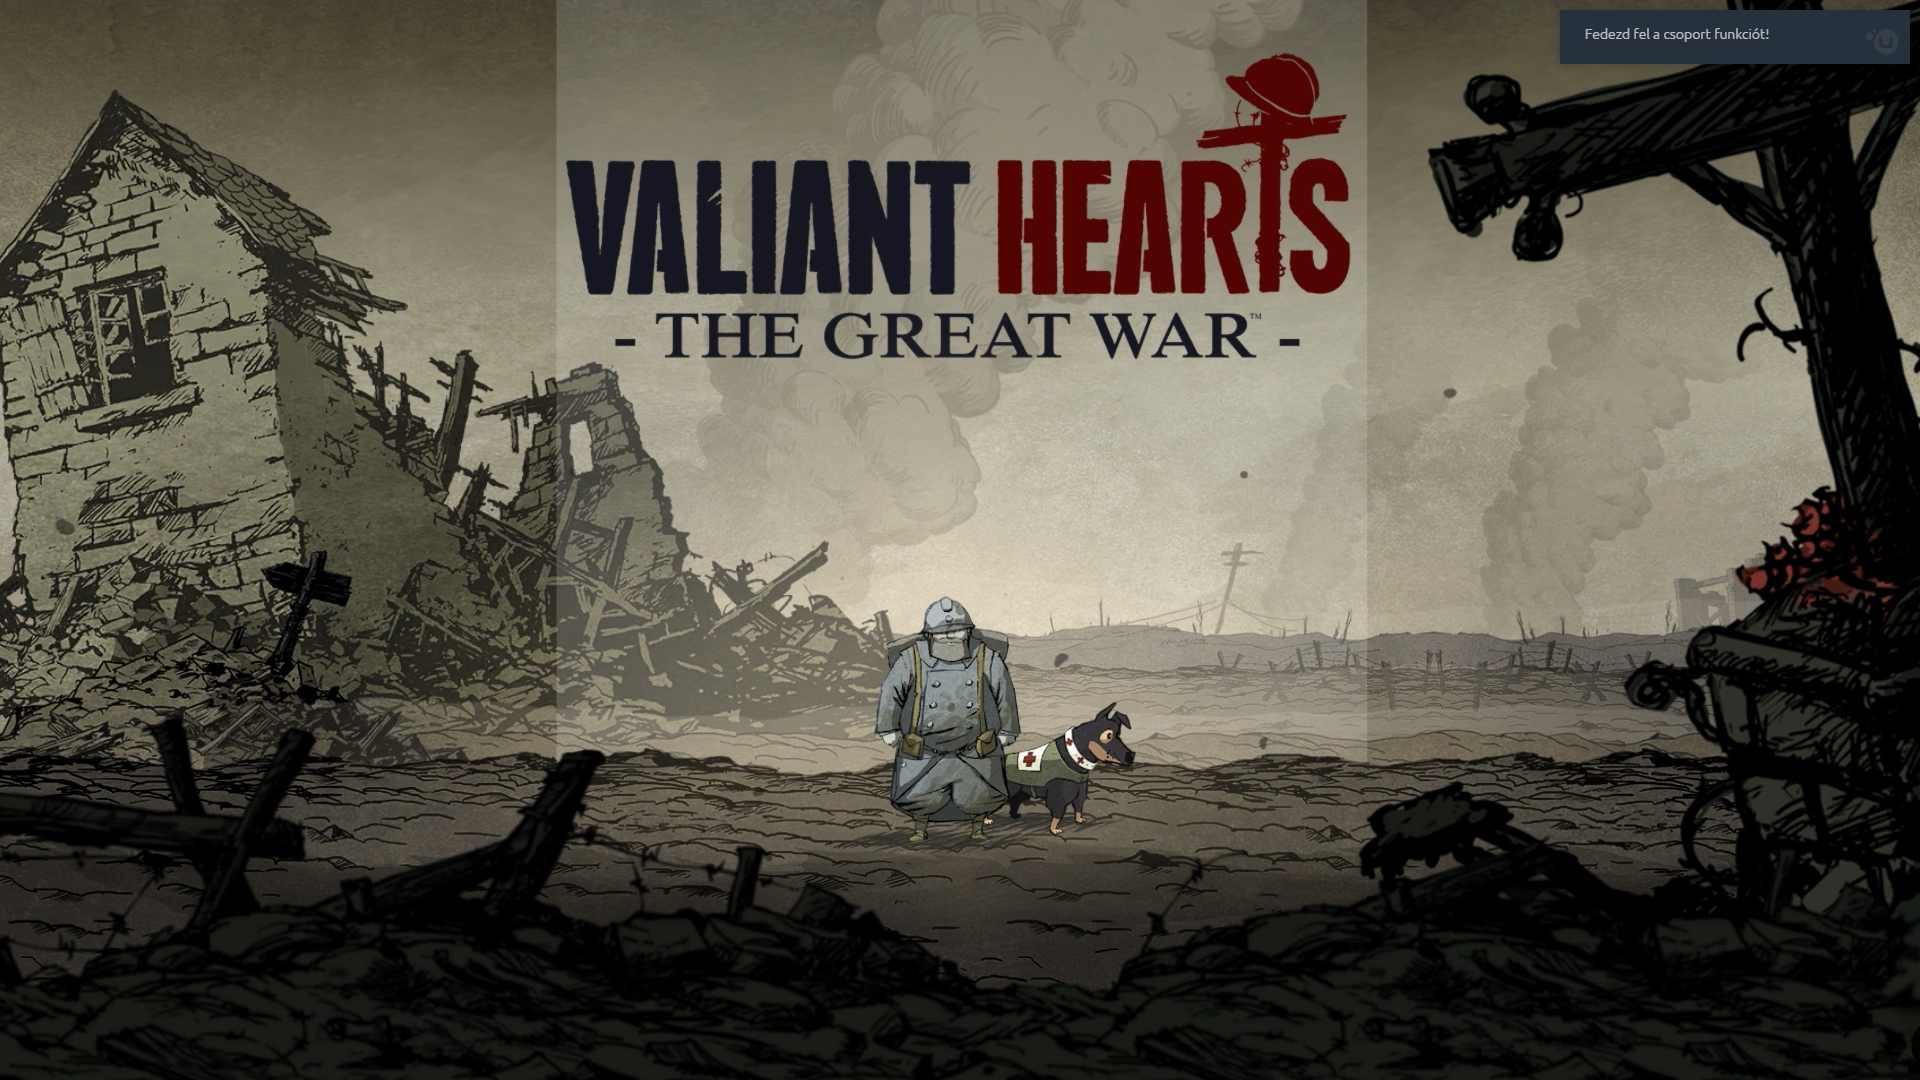 valiant_hearts01.JPG